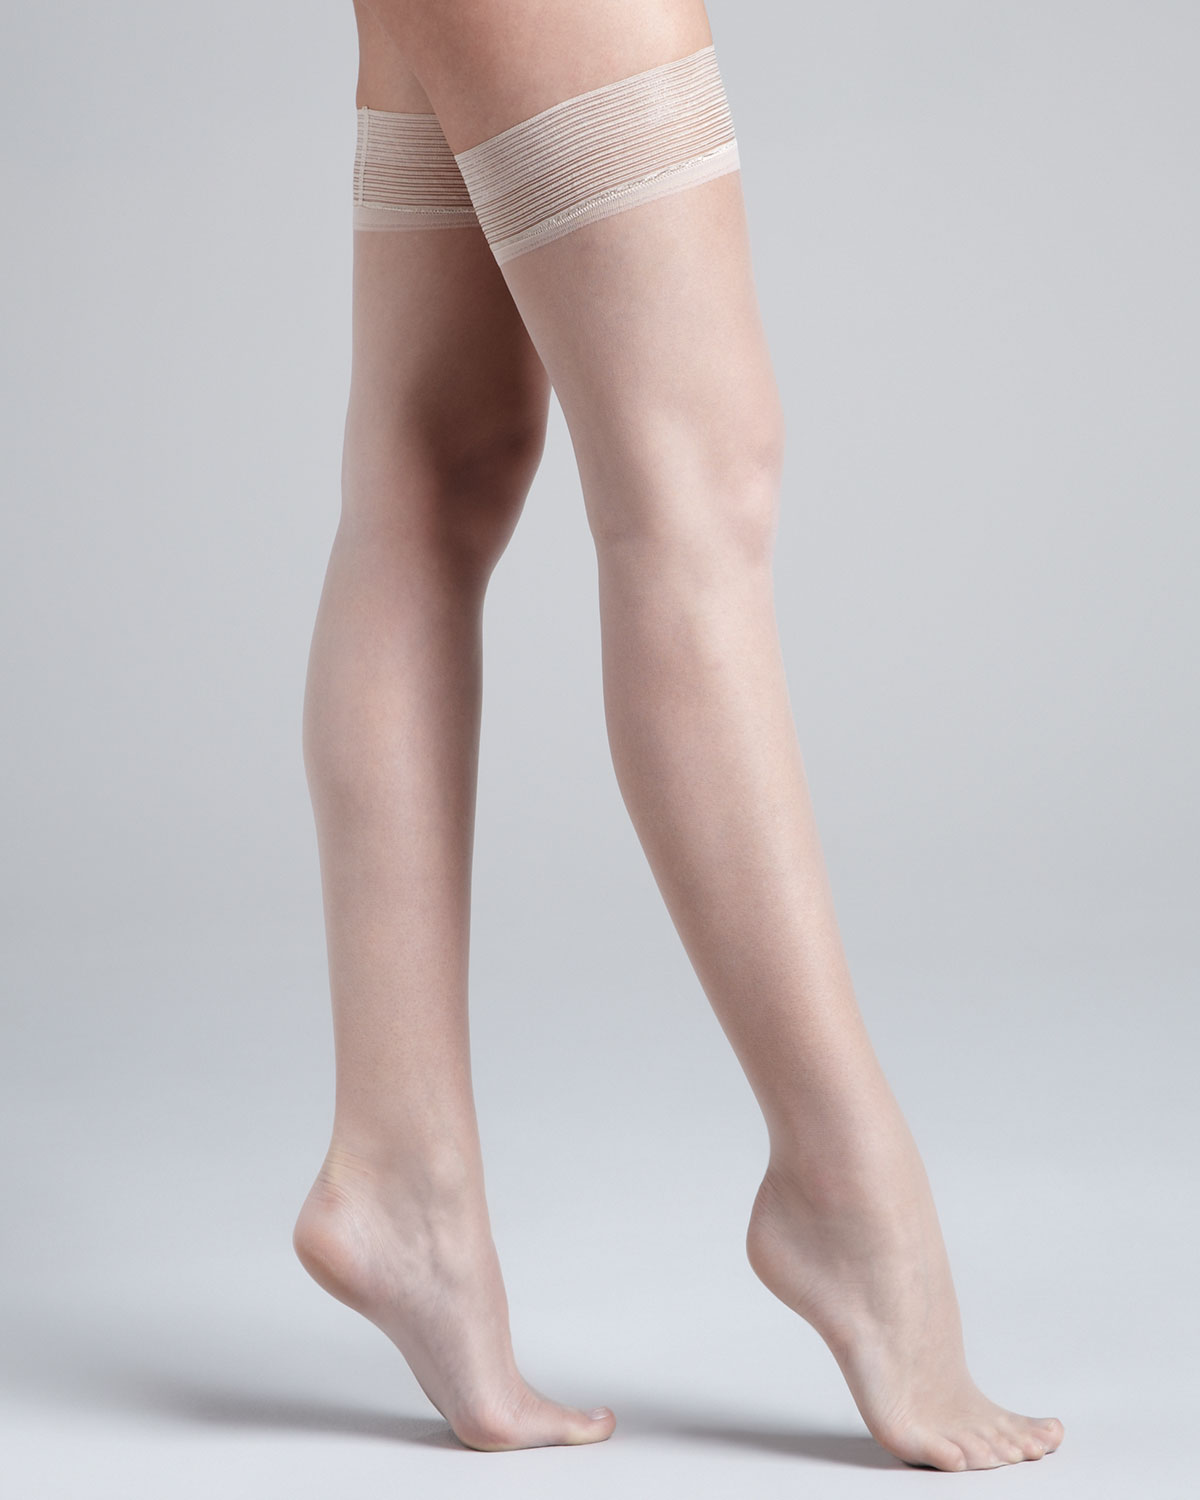 f74114d76e62b Donna Karan Nudes Thigh High Stayup Stockings in Natural - Lyst